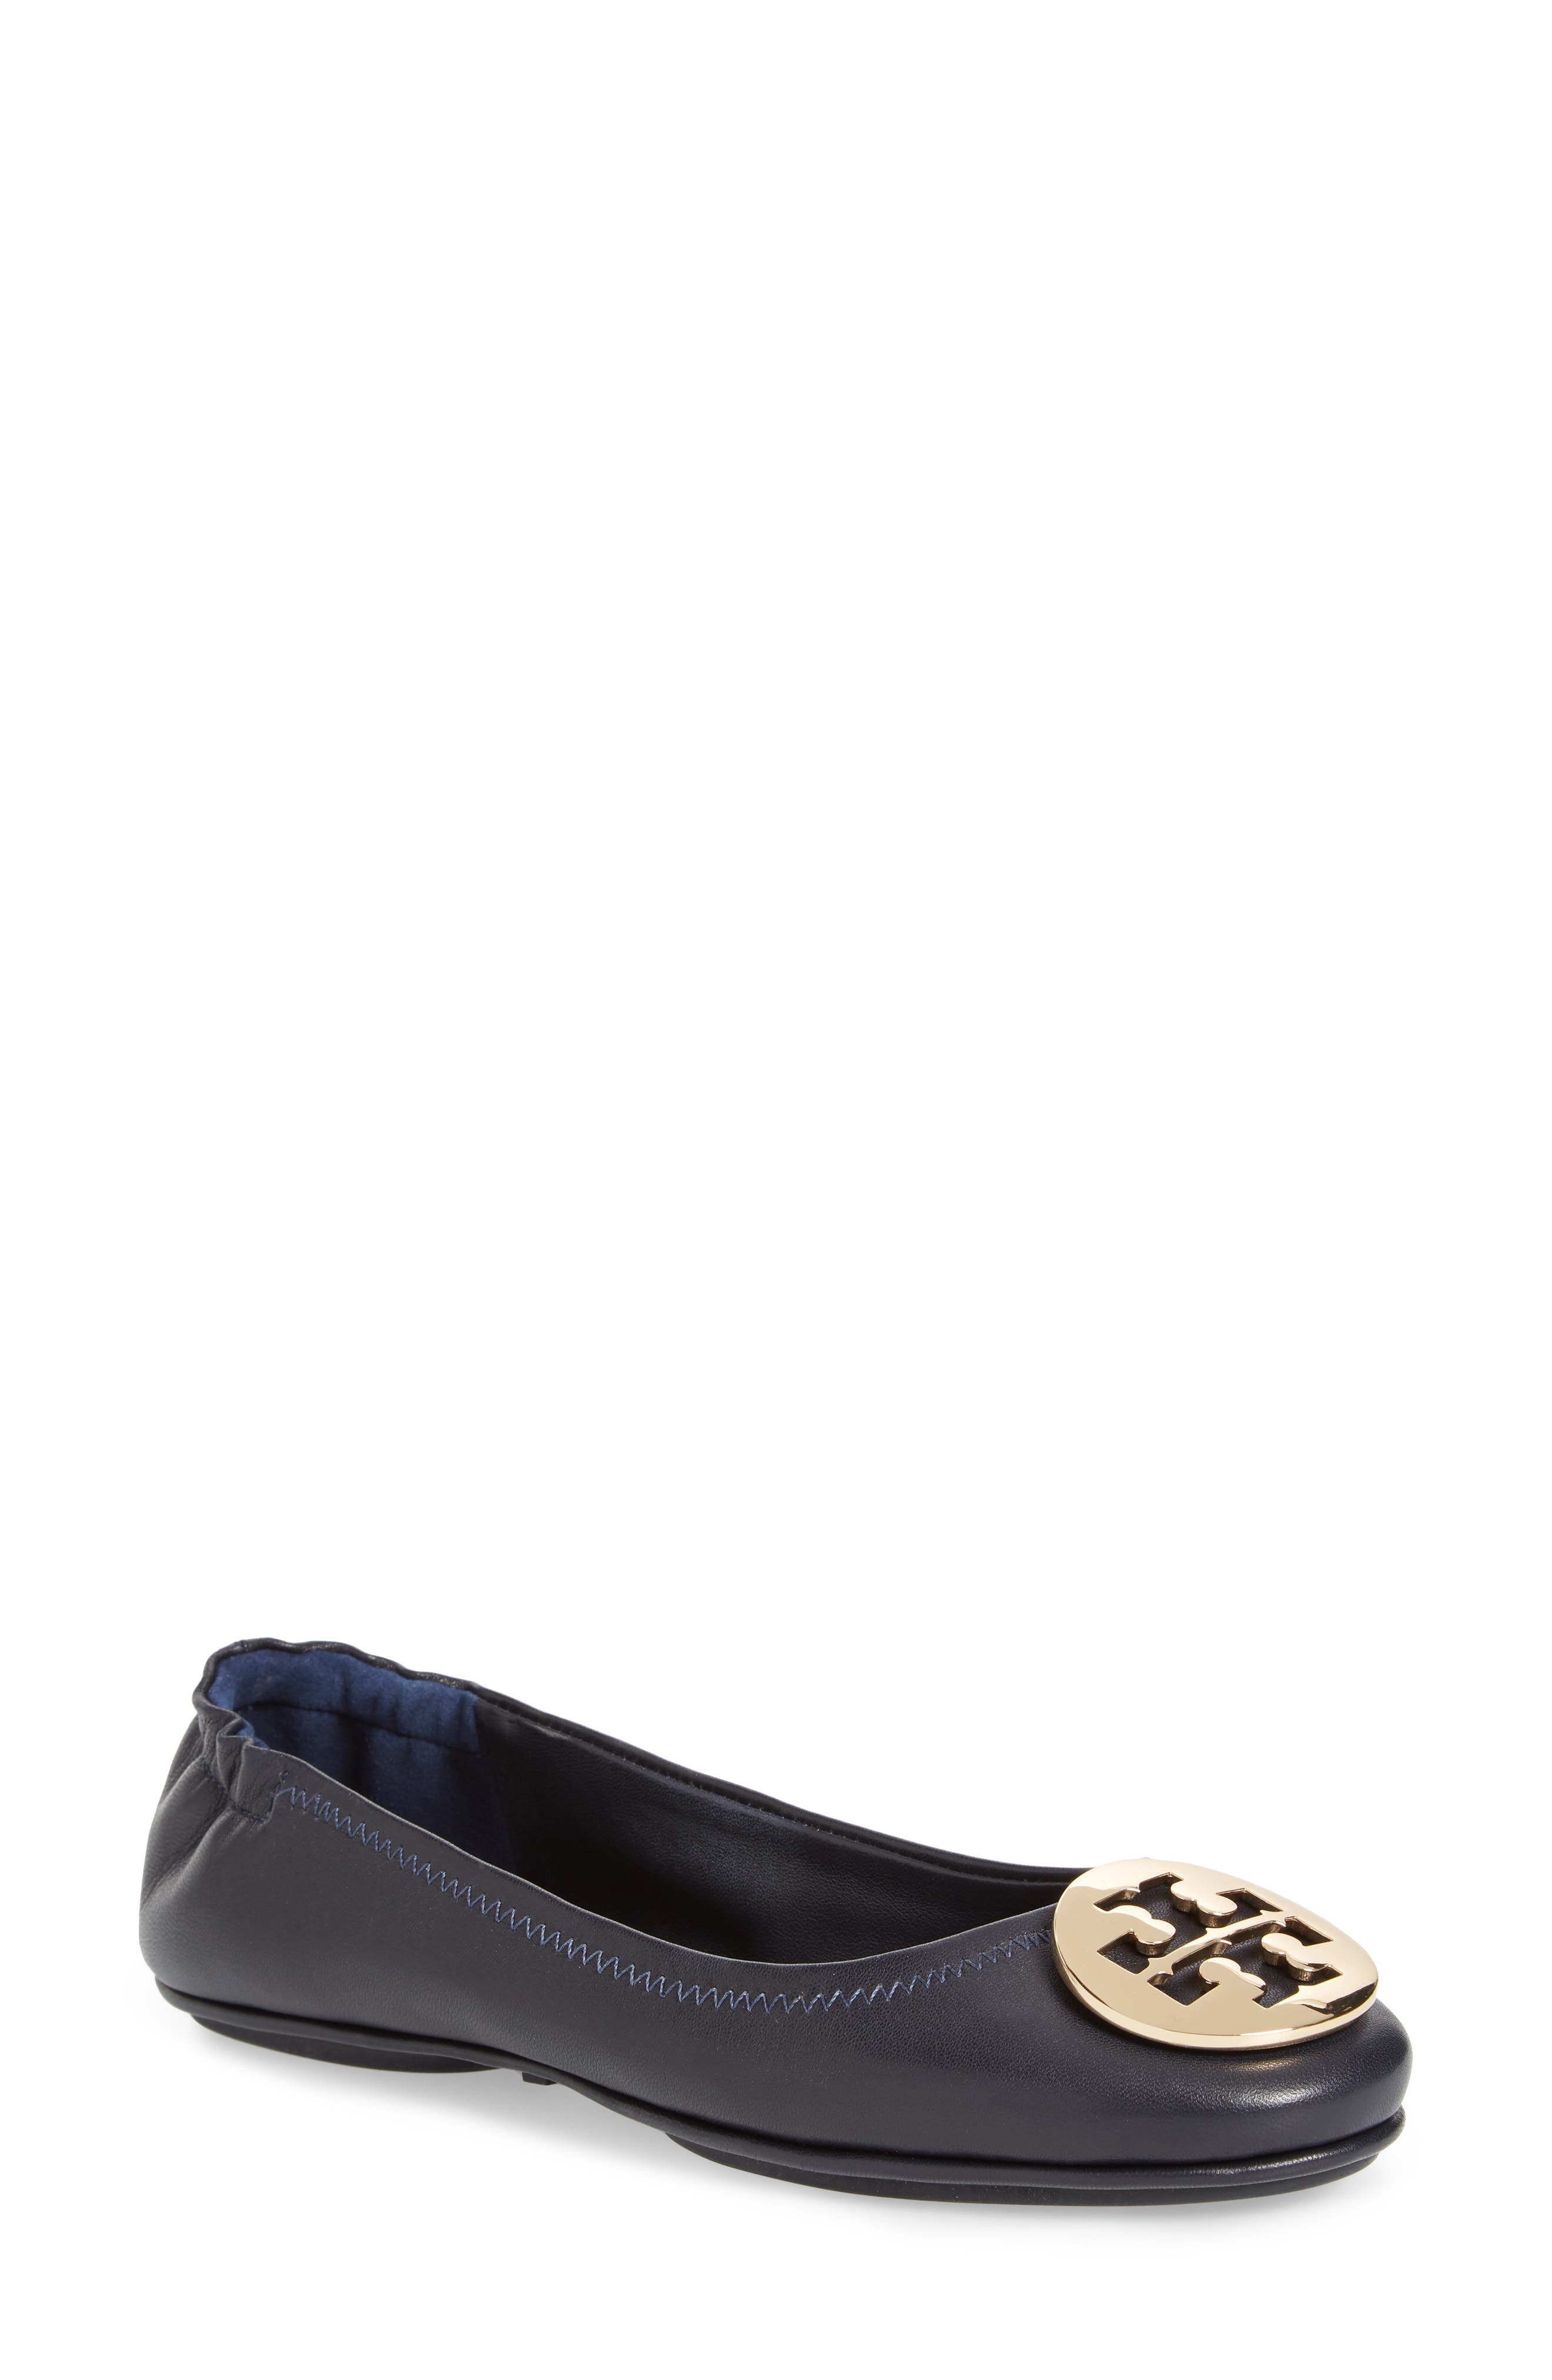 'Minnie' Travel Ballet Flat,                         Main,                         color, PERFECT NAVY